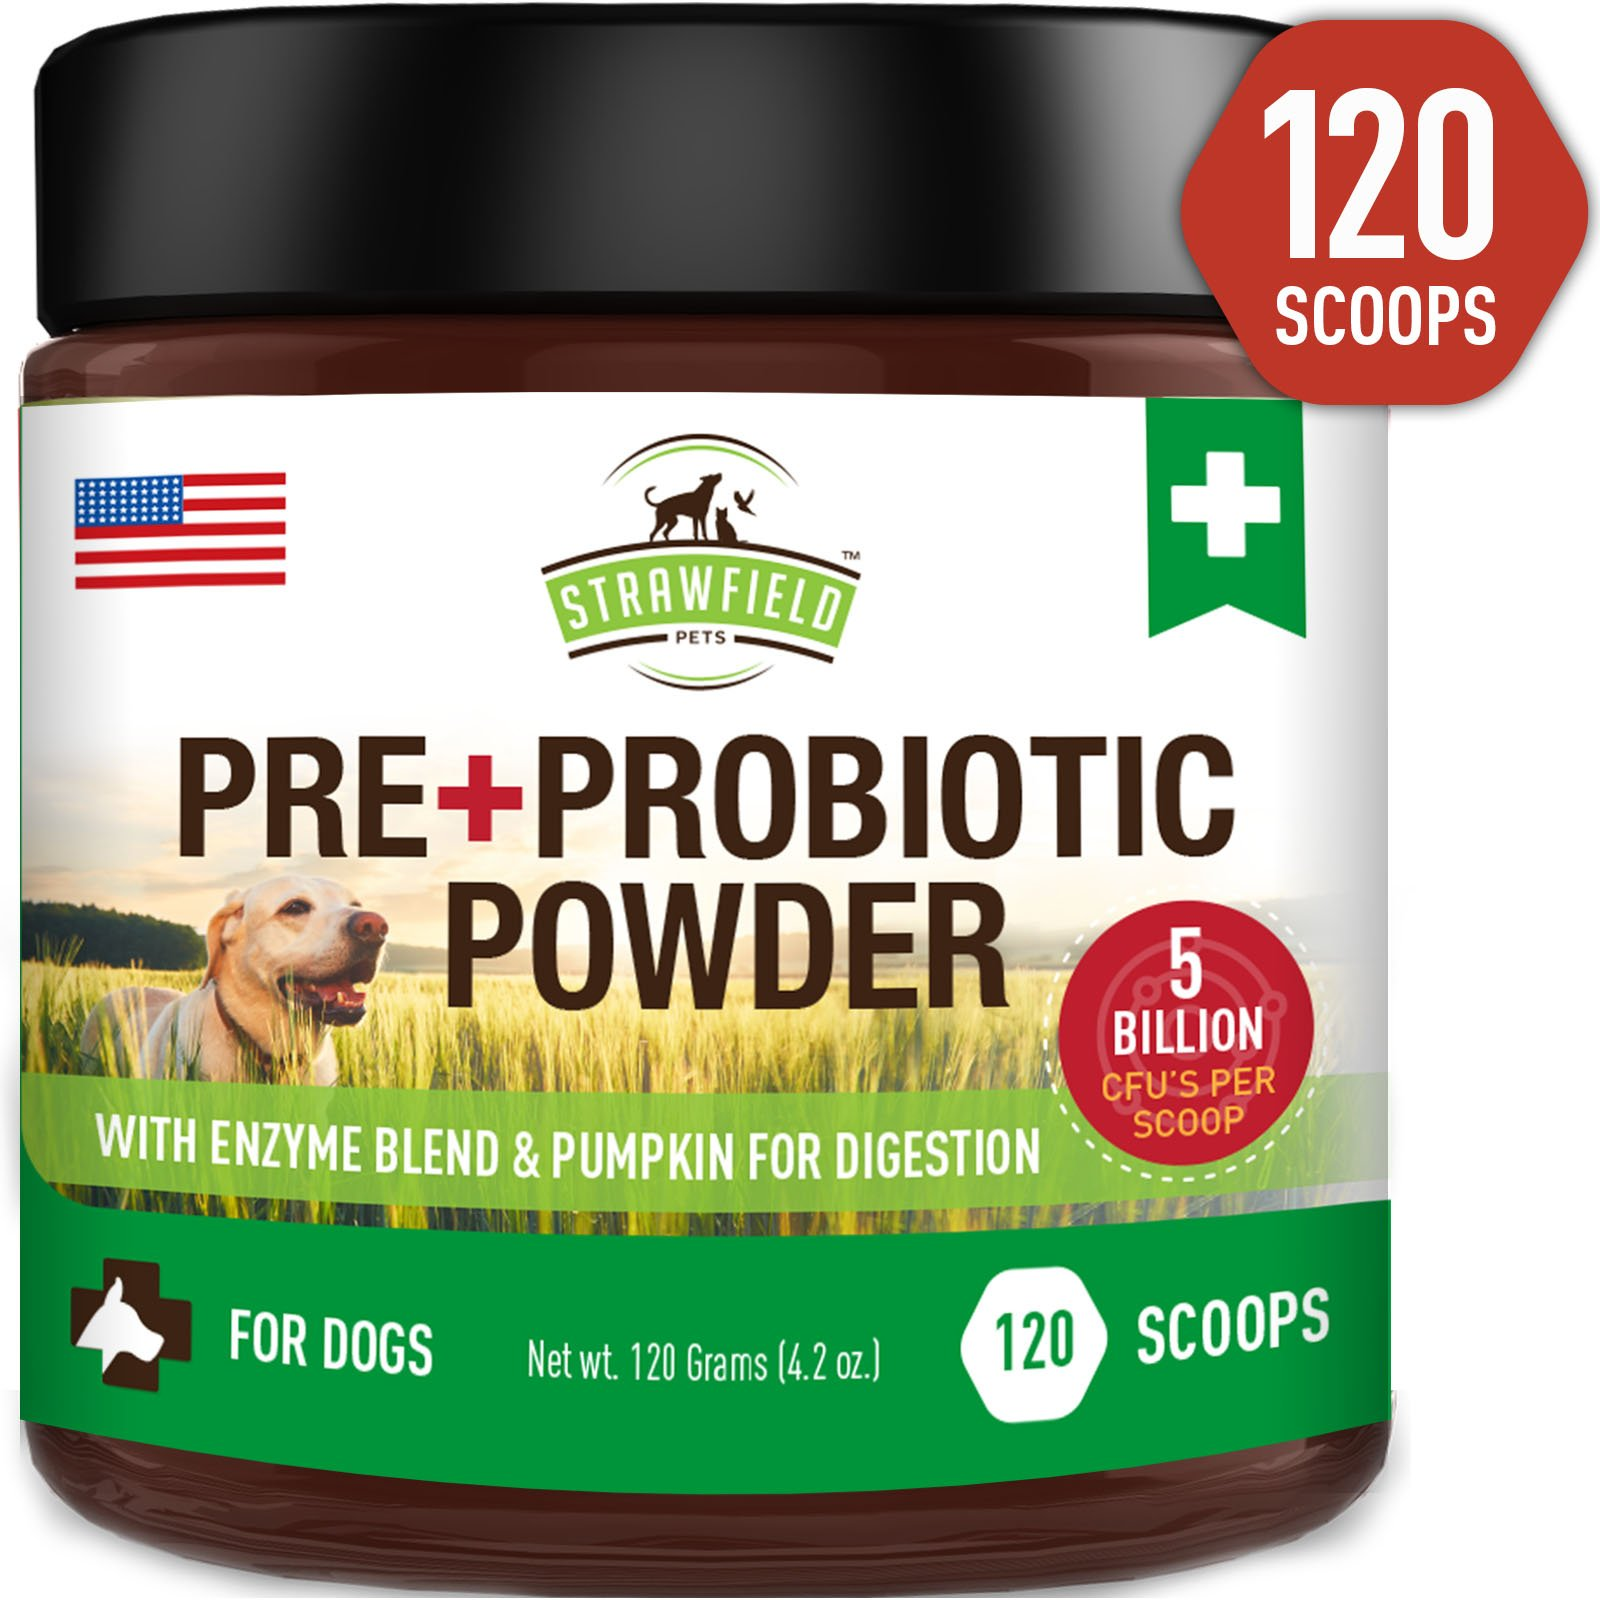 Probiotics for Dogs + Digestive Enzymes, Prebiotics, Pumpkin - 120 Grams 5 Billion CFU - Dog Probiotic Powder Supplement for Pet Allergy Relief, Constipation Immune Support Diarrhea Upset Stomach, USA by Strawfield Pets